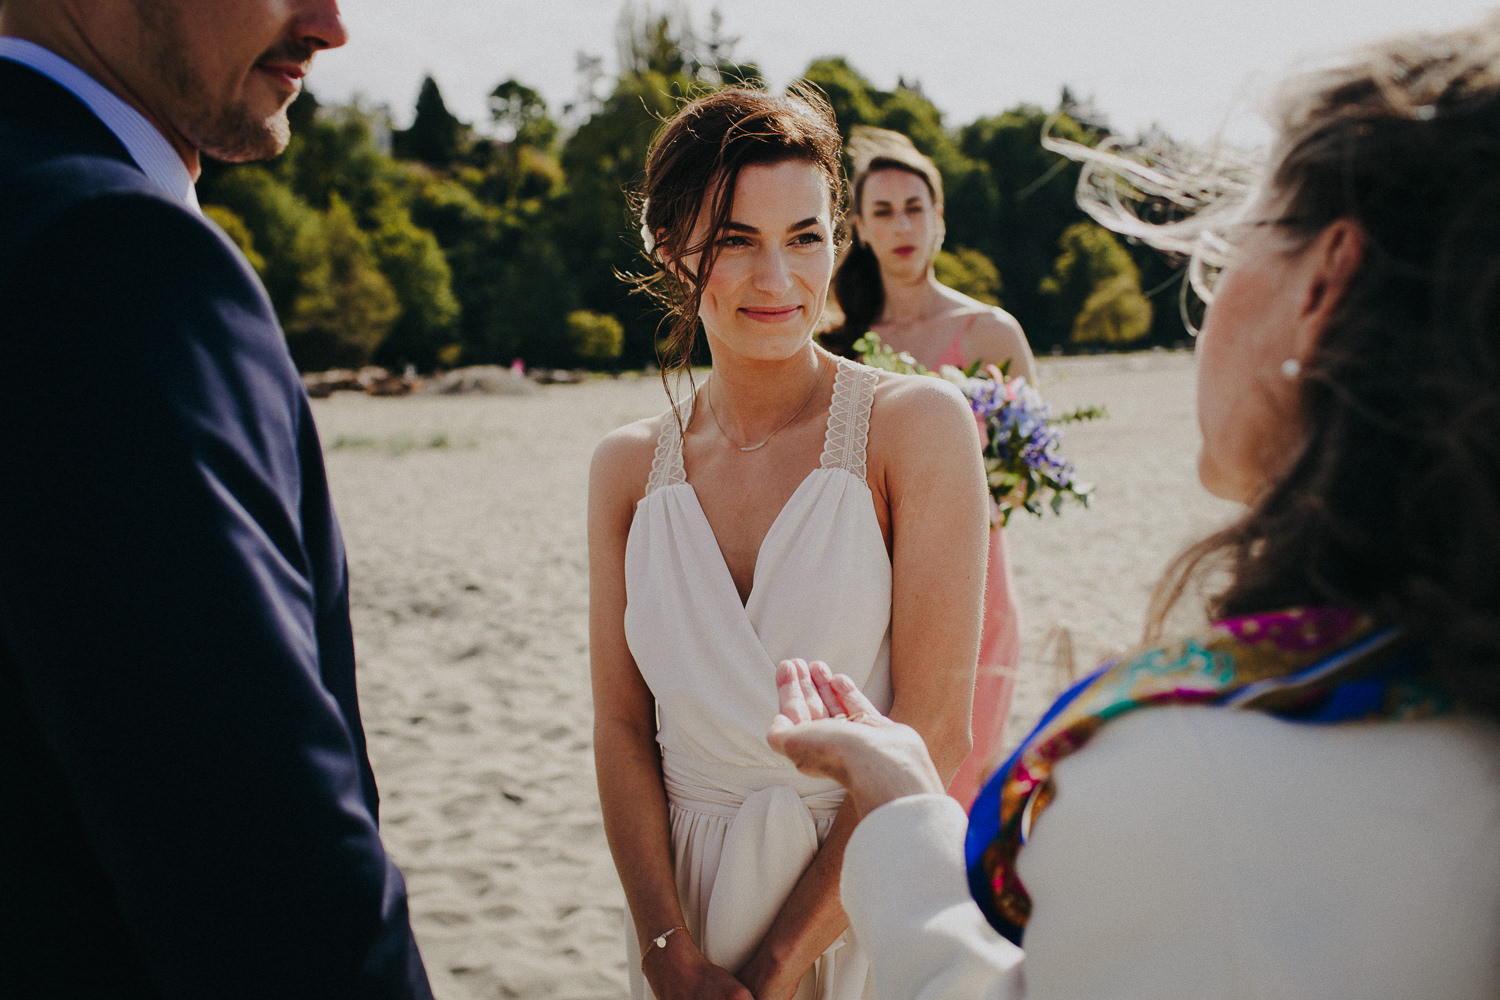 the bride looking at the officiant